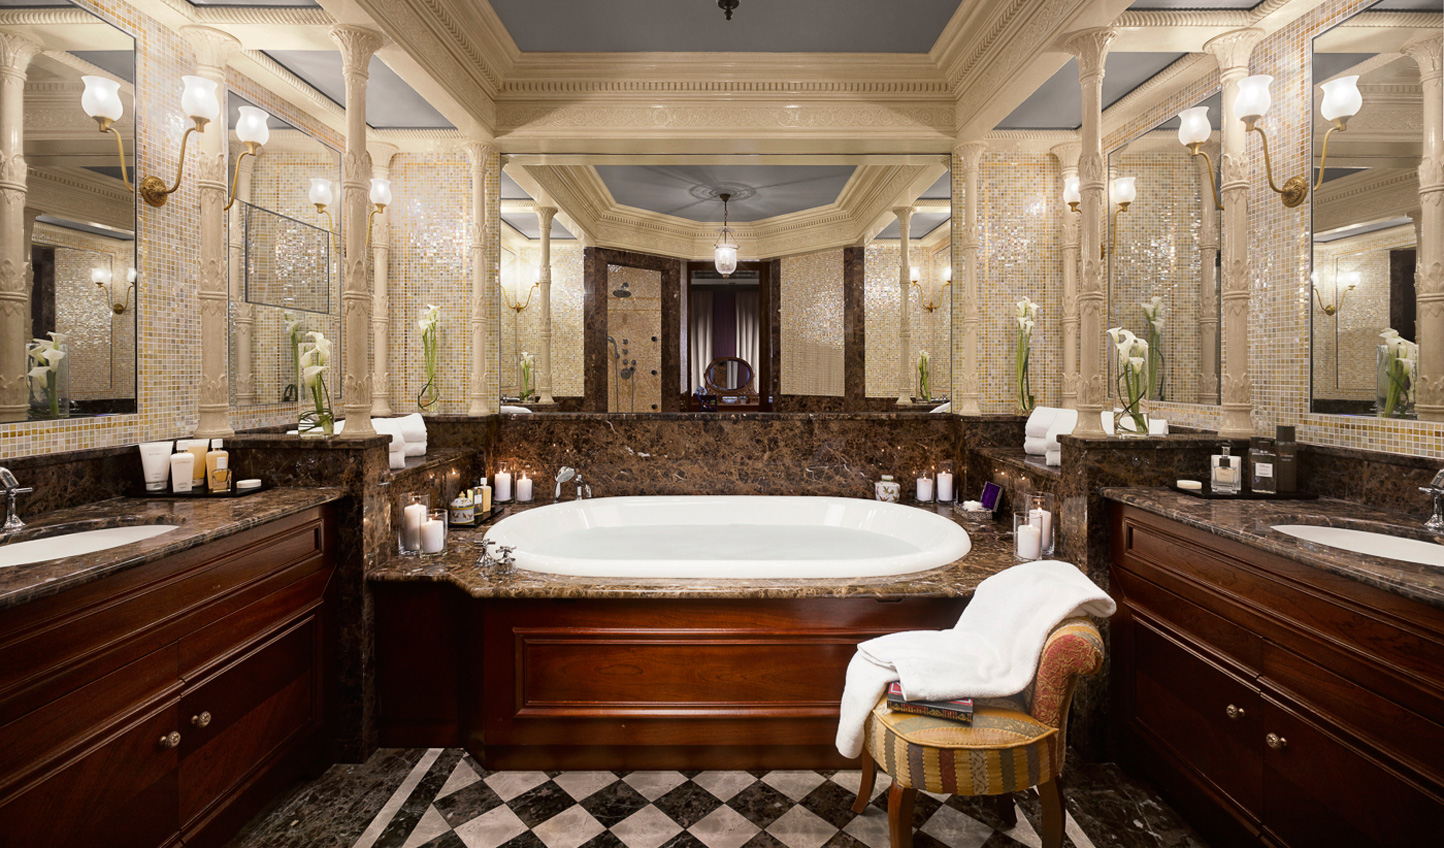 Step into the opulent Carre d'Or bathroom